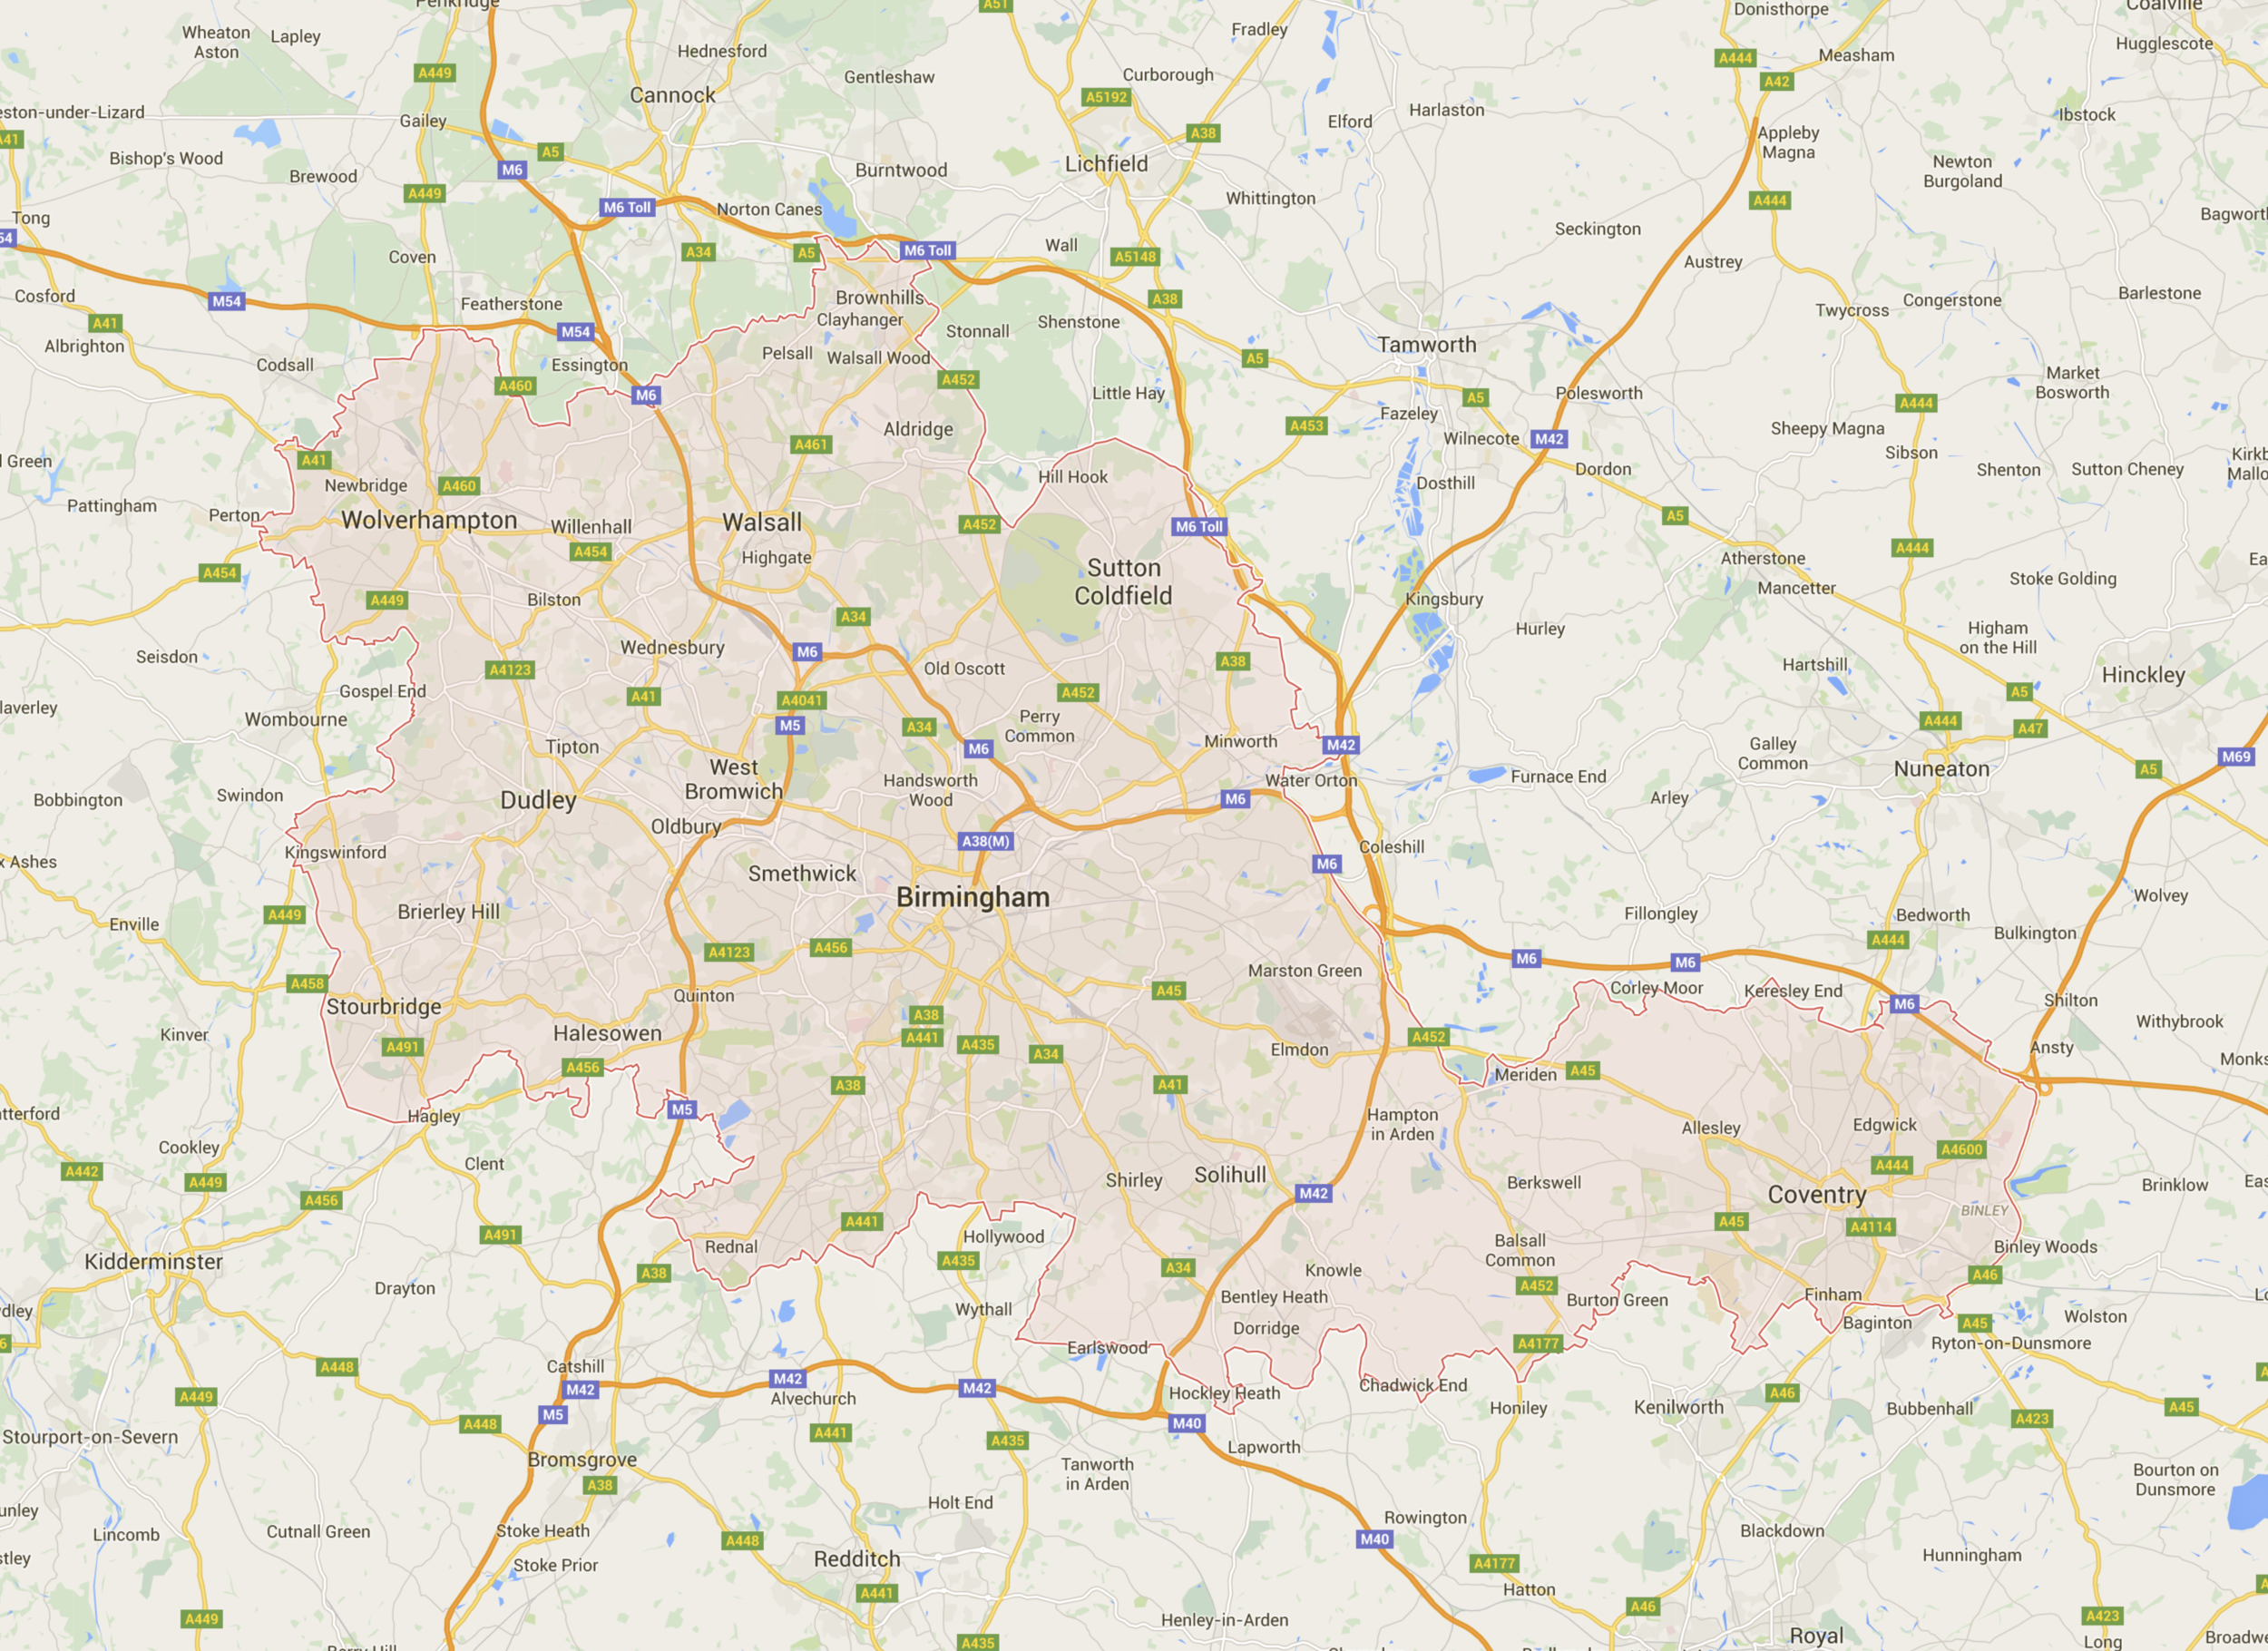 Google Map of the West Midlands